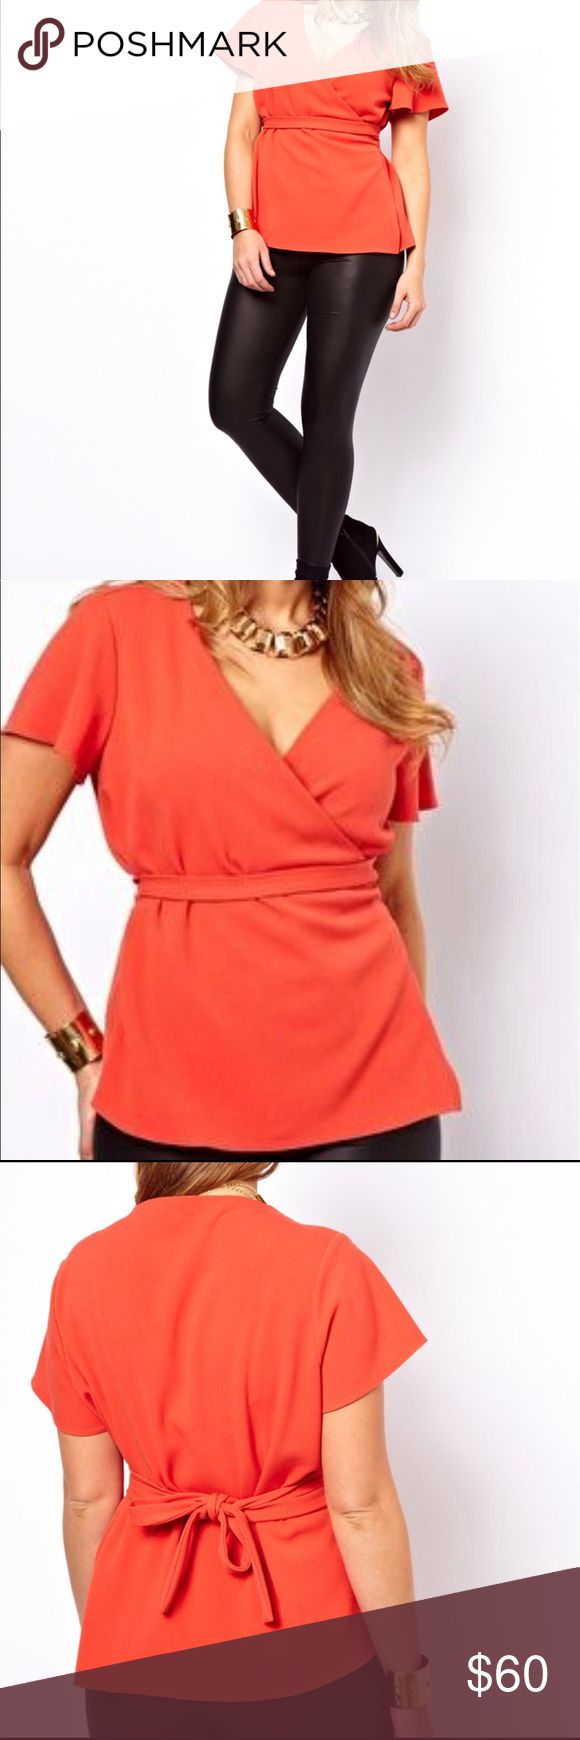 ASOS curve Top With FlutedSleeves And Belted Waist Orange classic top with fancy sleeves. Photos courtesy @asos ASOS Curve Tops